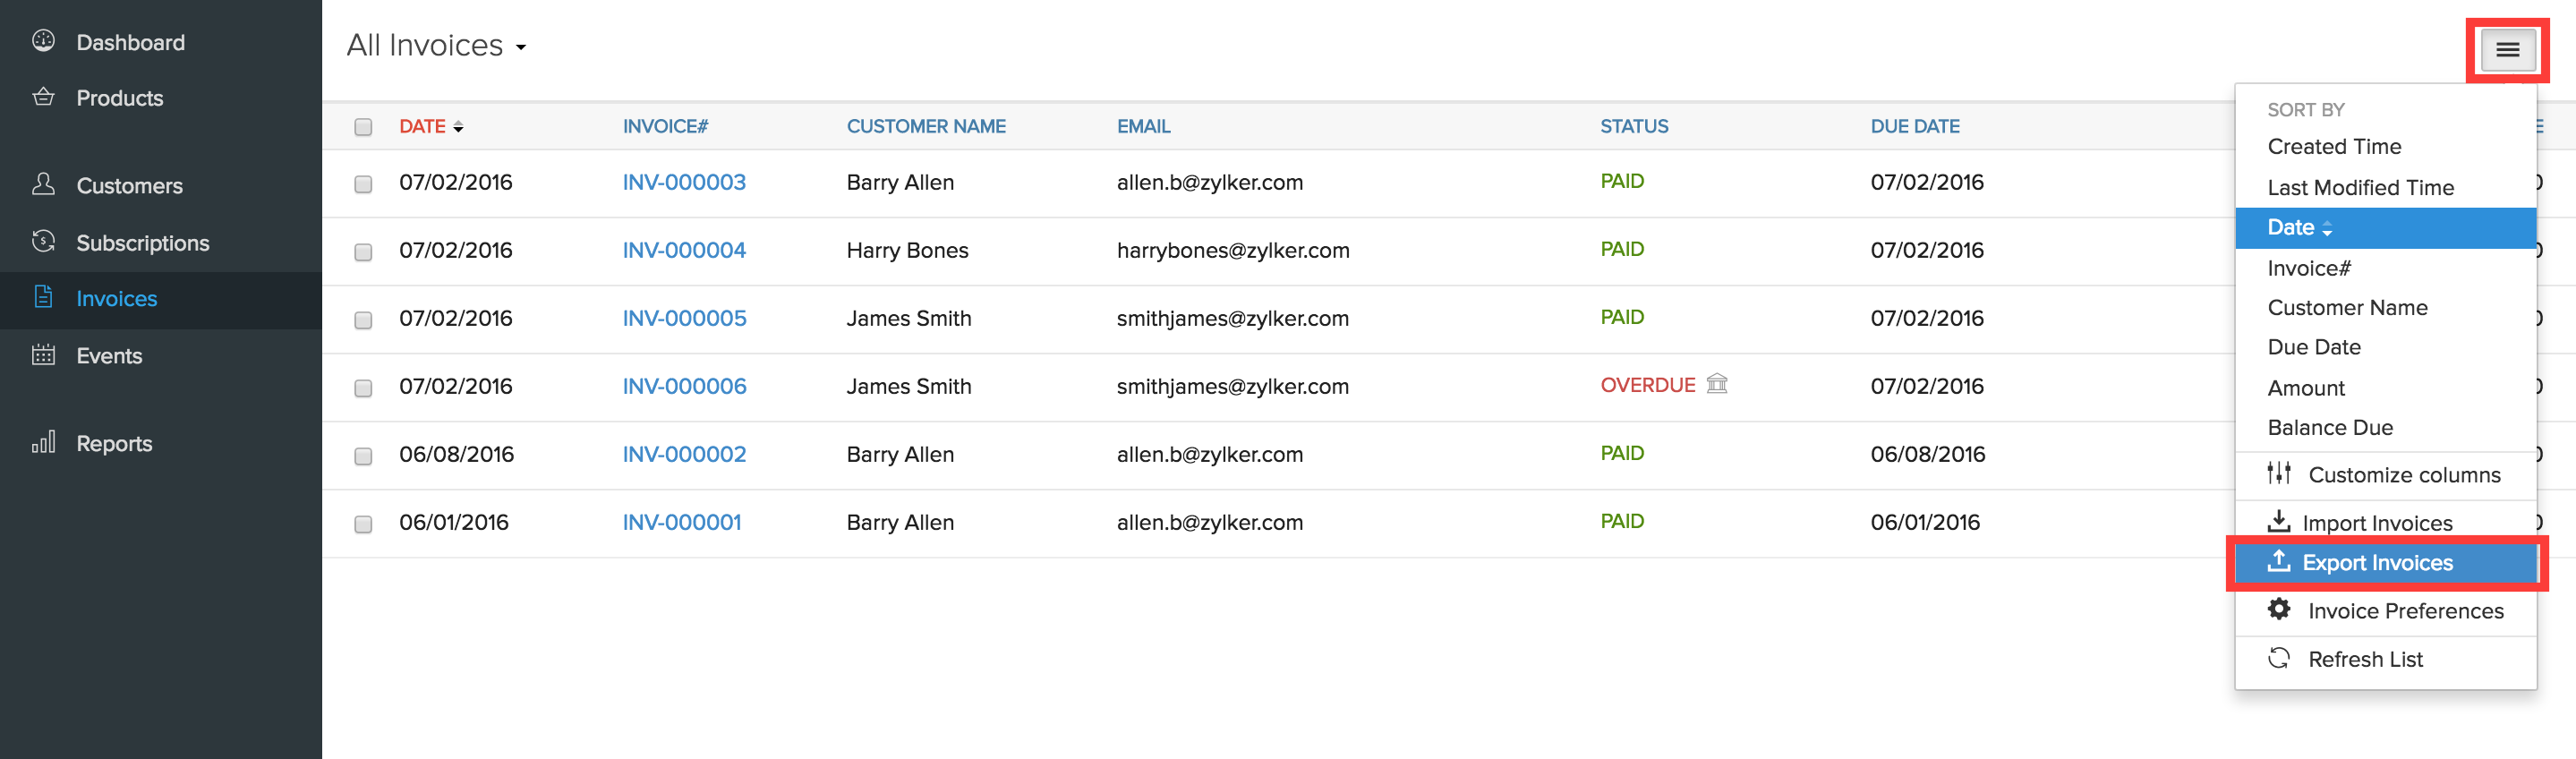 Export Invoices button